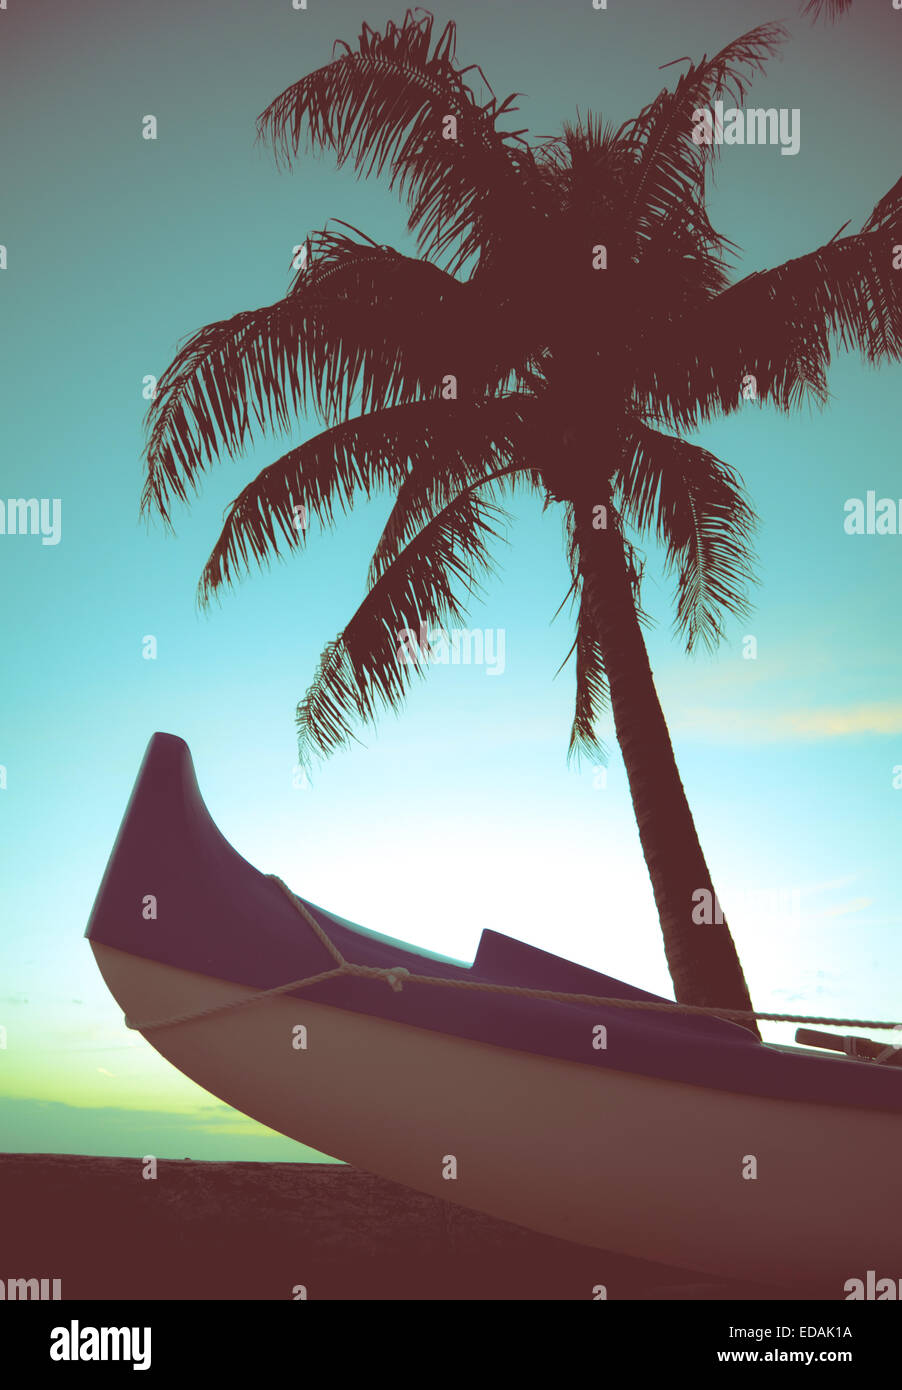 Outrigger Canoe And Palm Tree In Hawaii - Stock Image